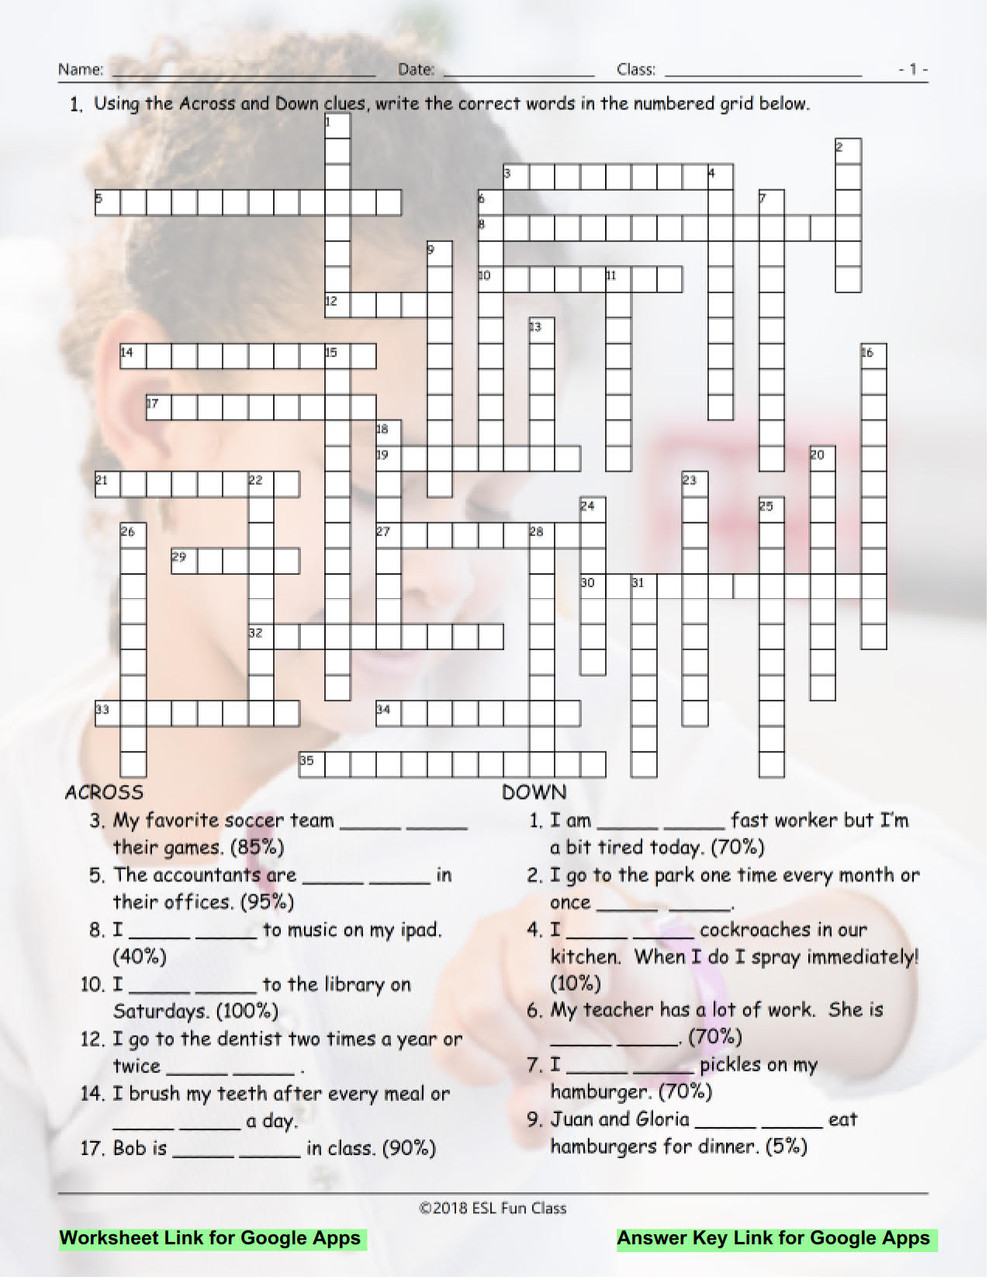 Frequency Adverbs-Time Expressions Interactive Crossword Puzzle for Google  Apps LINKS - Amped Up Learning [ 1280 x 989 Pixel ]